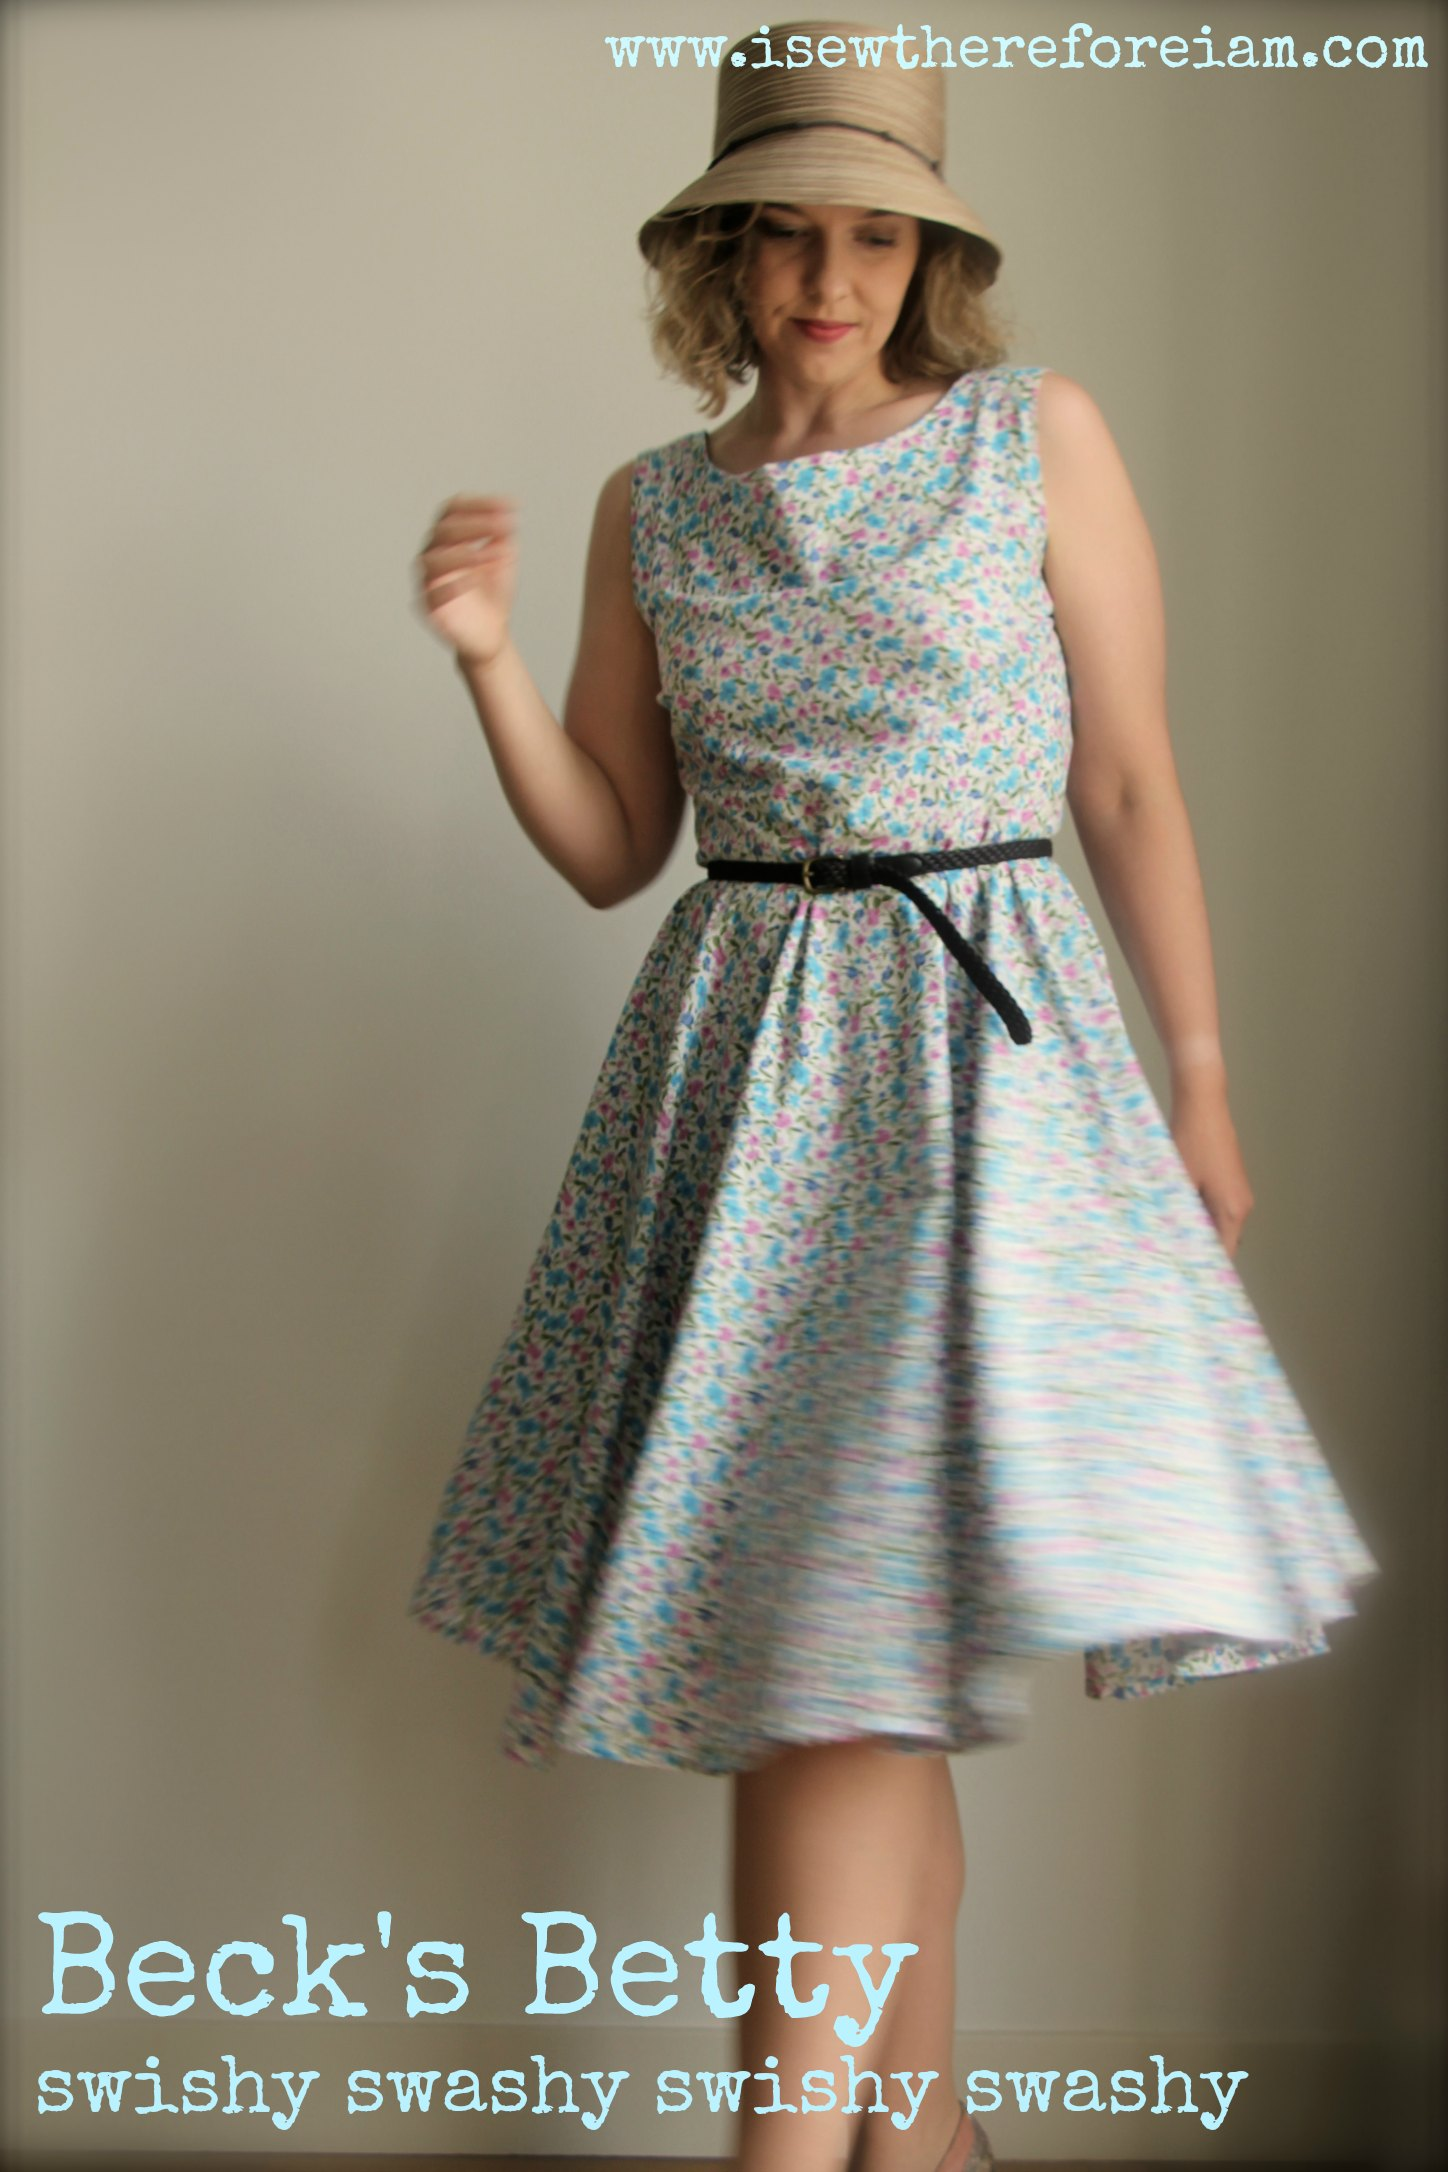 A Betty dress in floral print. I love the effect of the circle skirt and a great dress for beginners